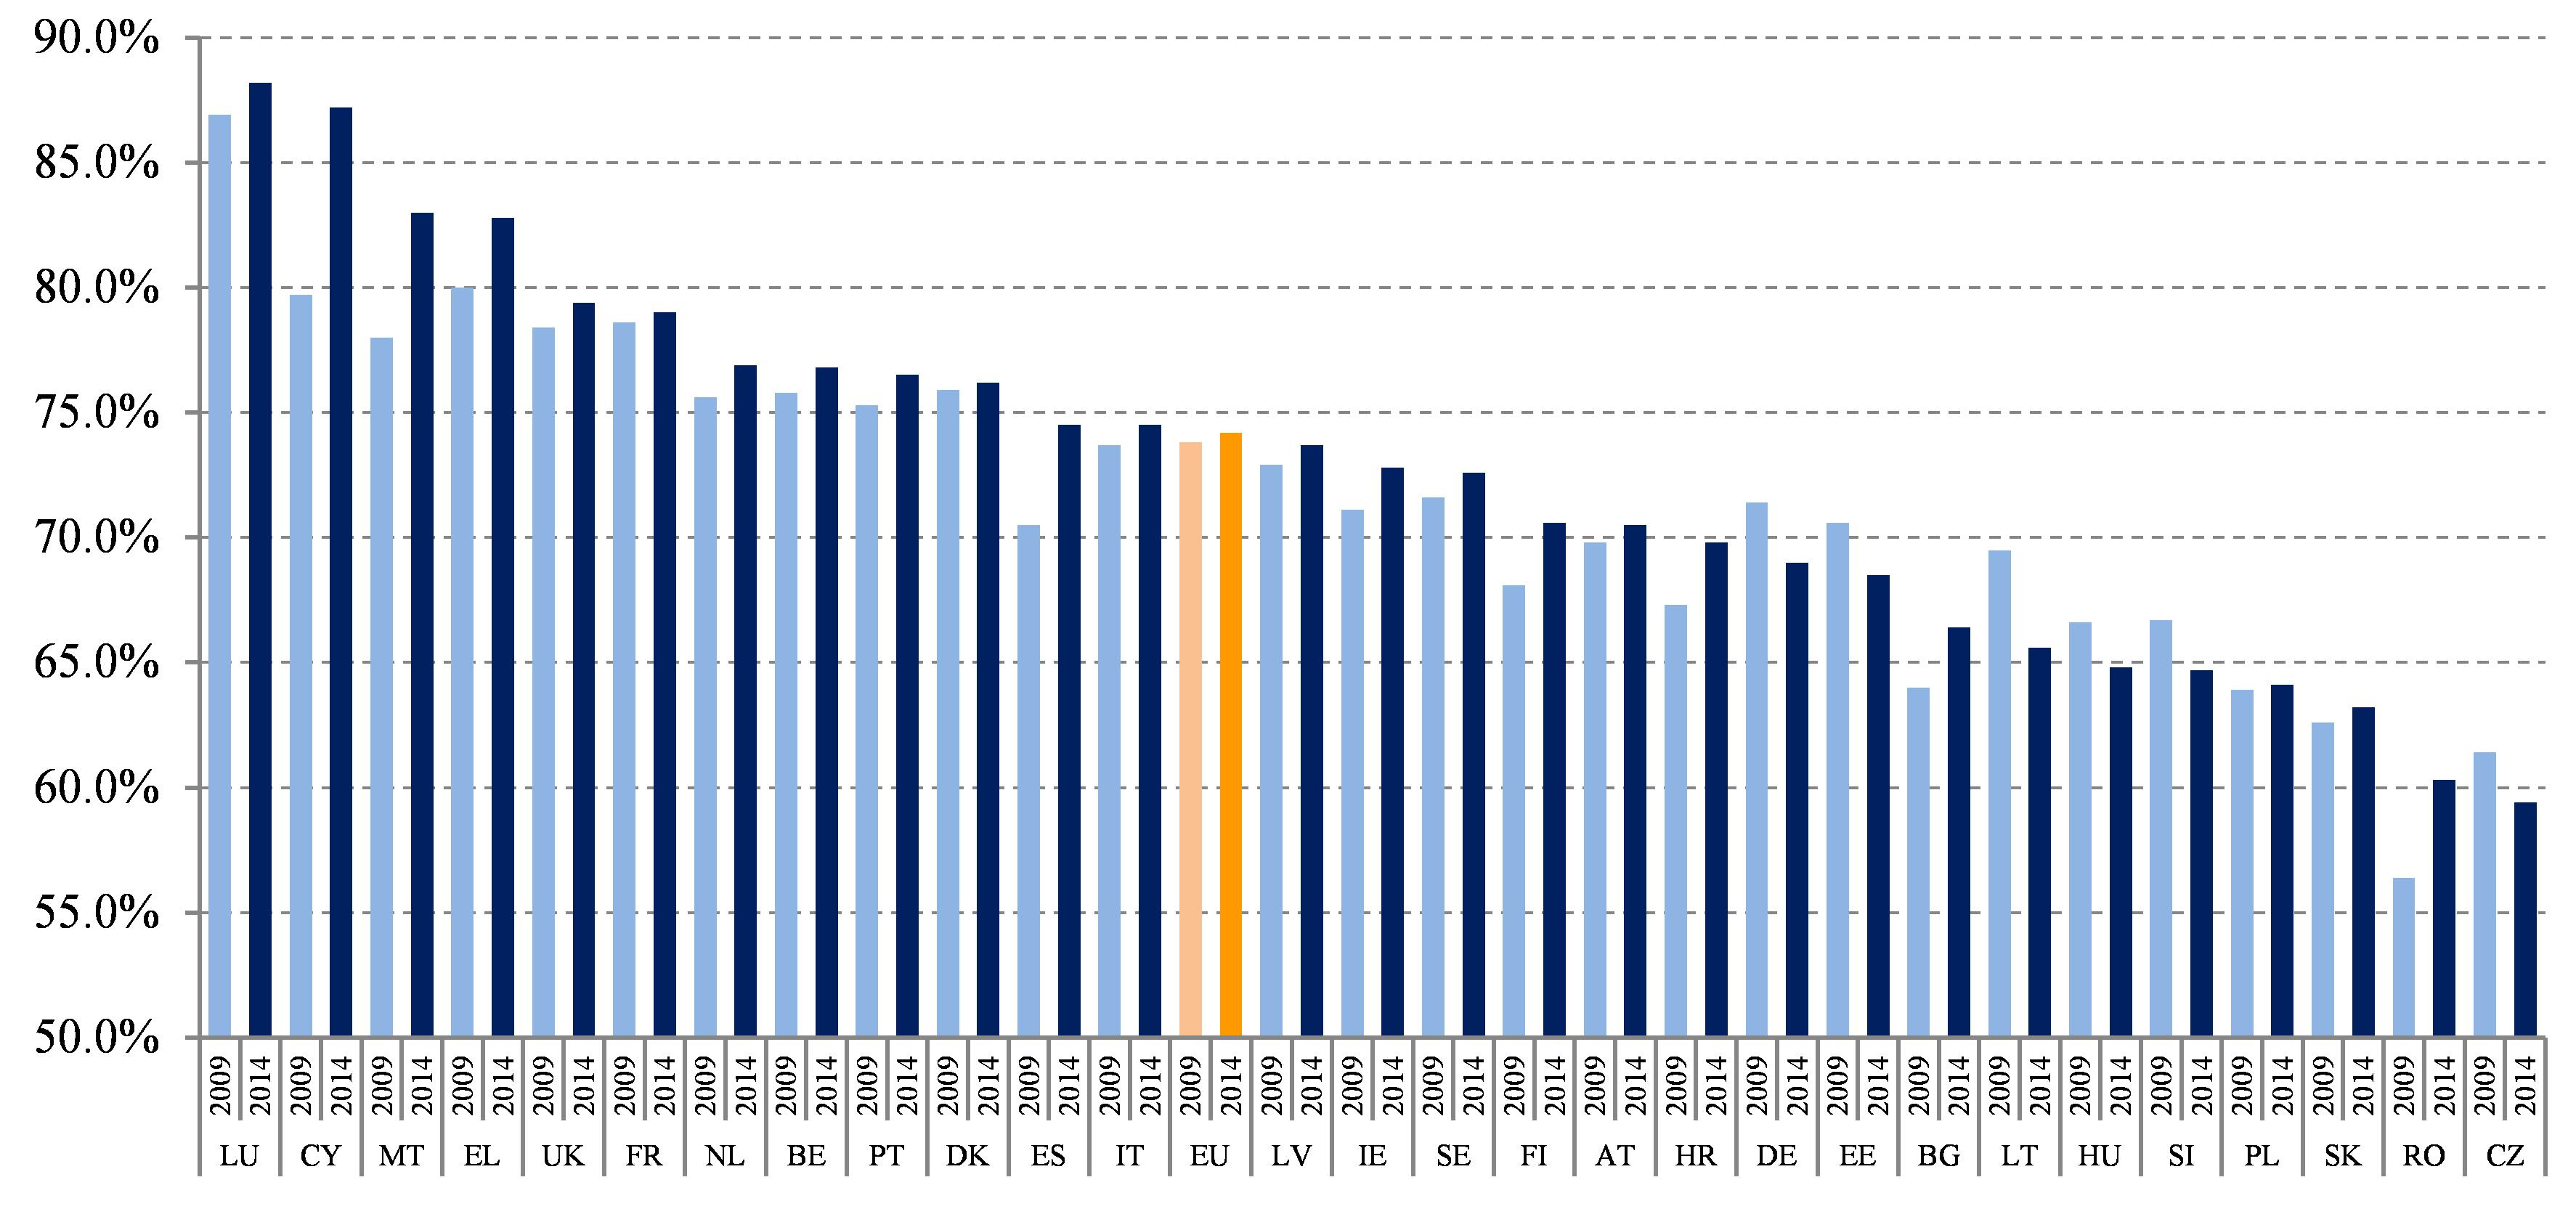 Eur lex 52015sc0203 en eur lex figure 23services as a percentage of gross value added 2009 and 2014 fandeluxe Choice Image